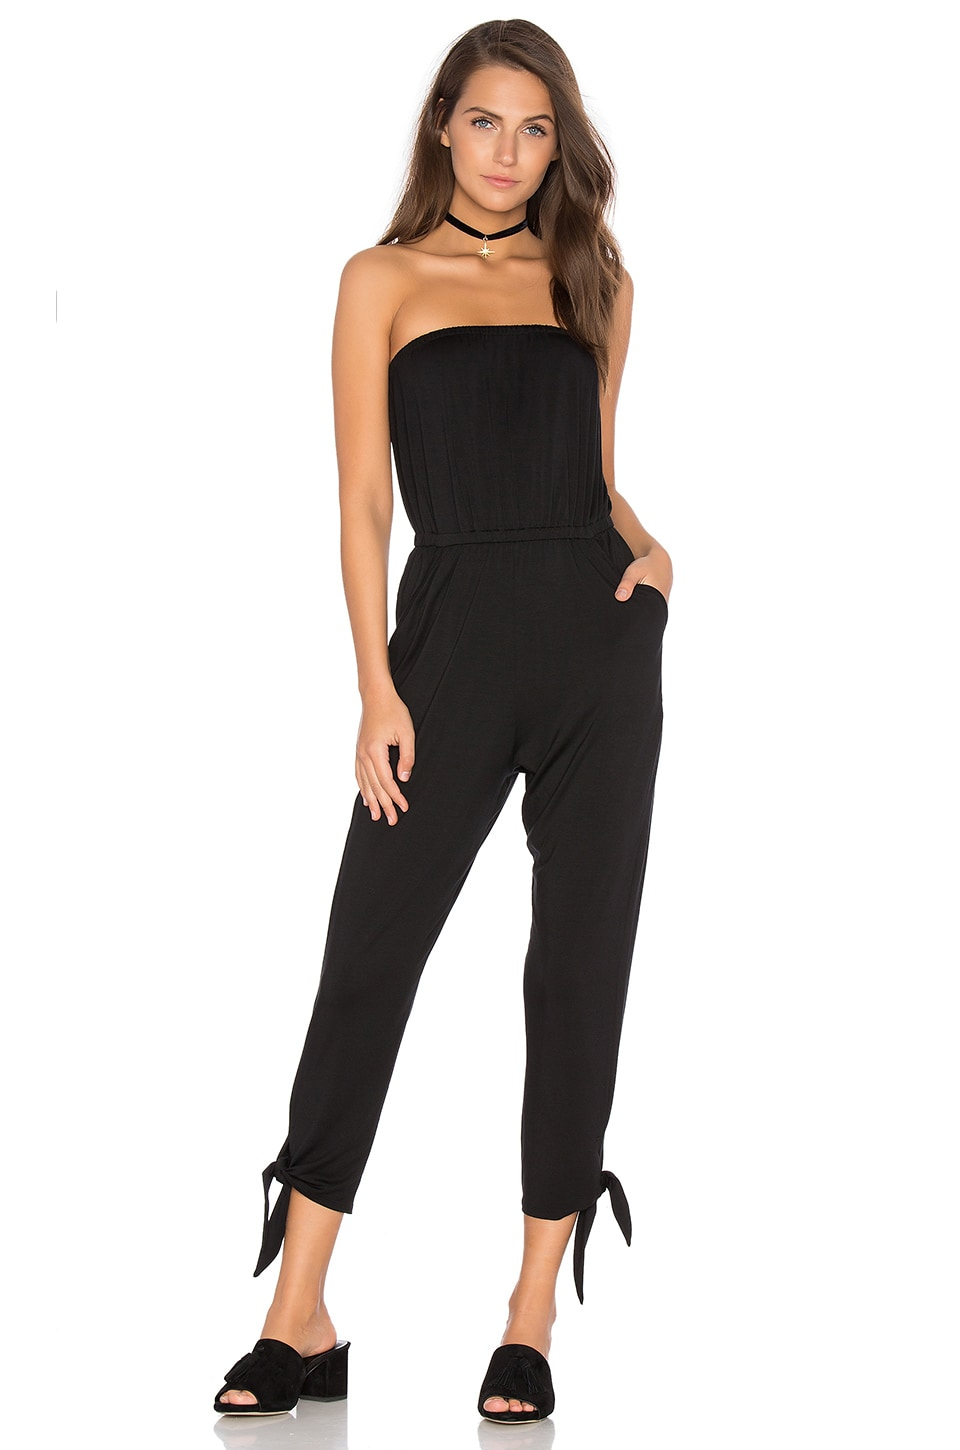 Rachel Pally Llewelyn Jumpsuit in Black